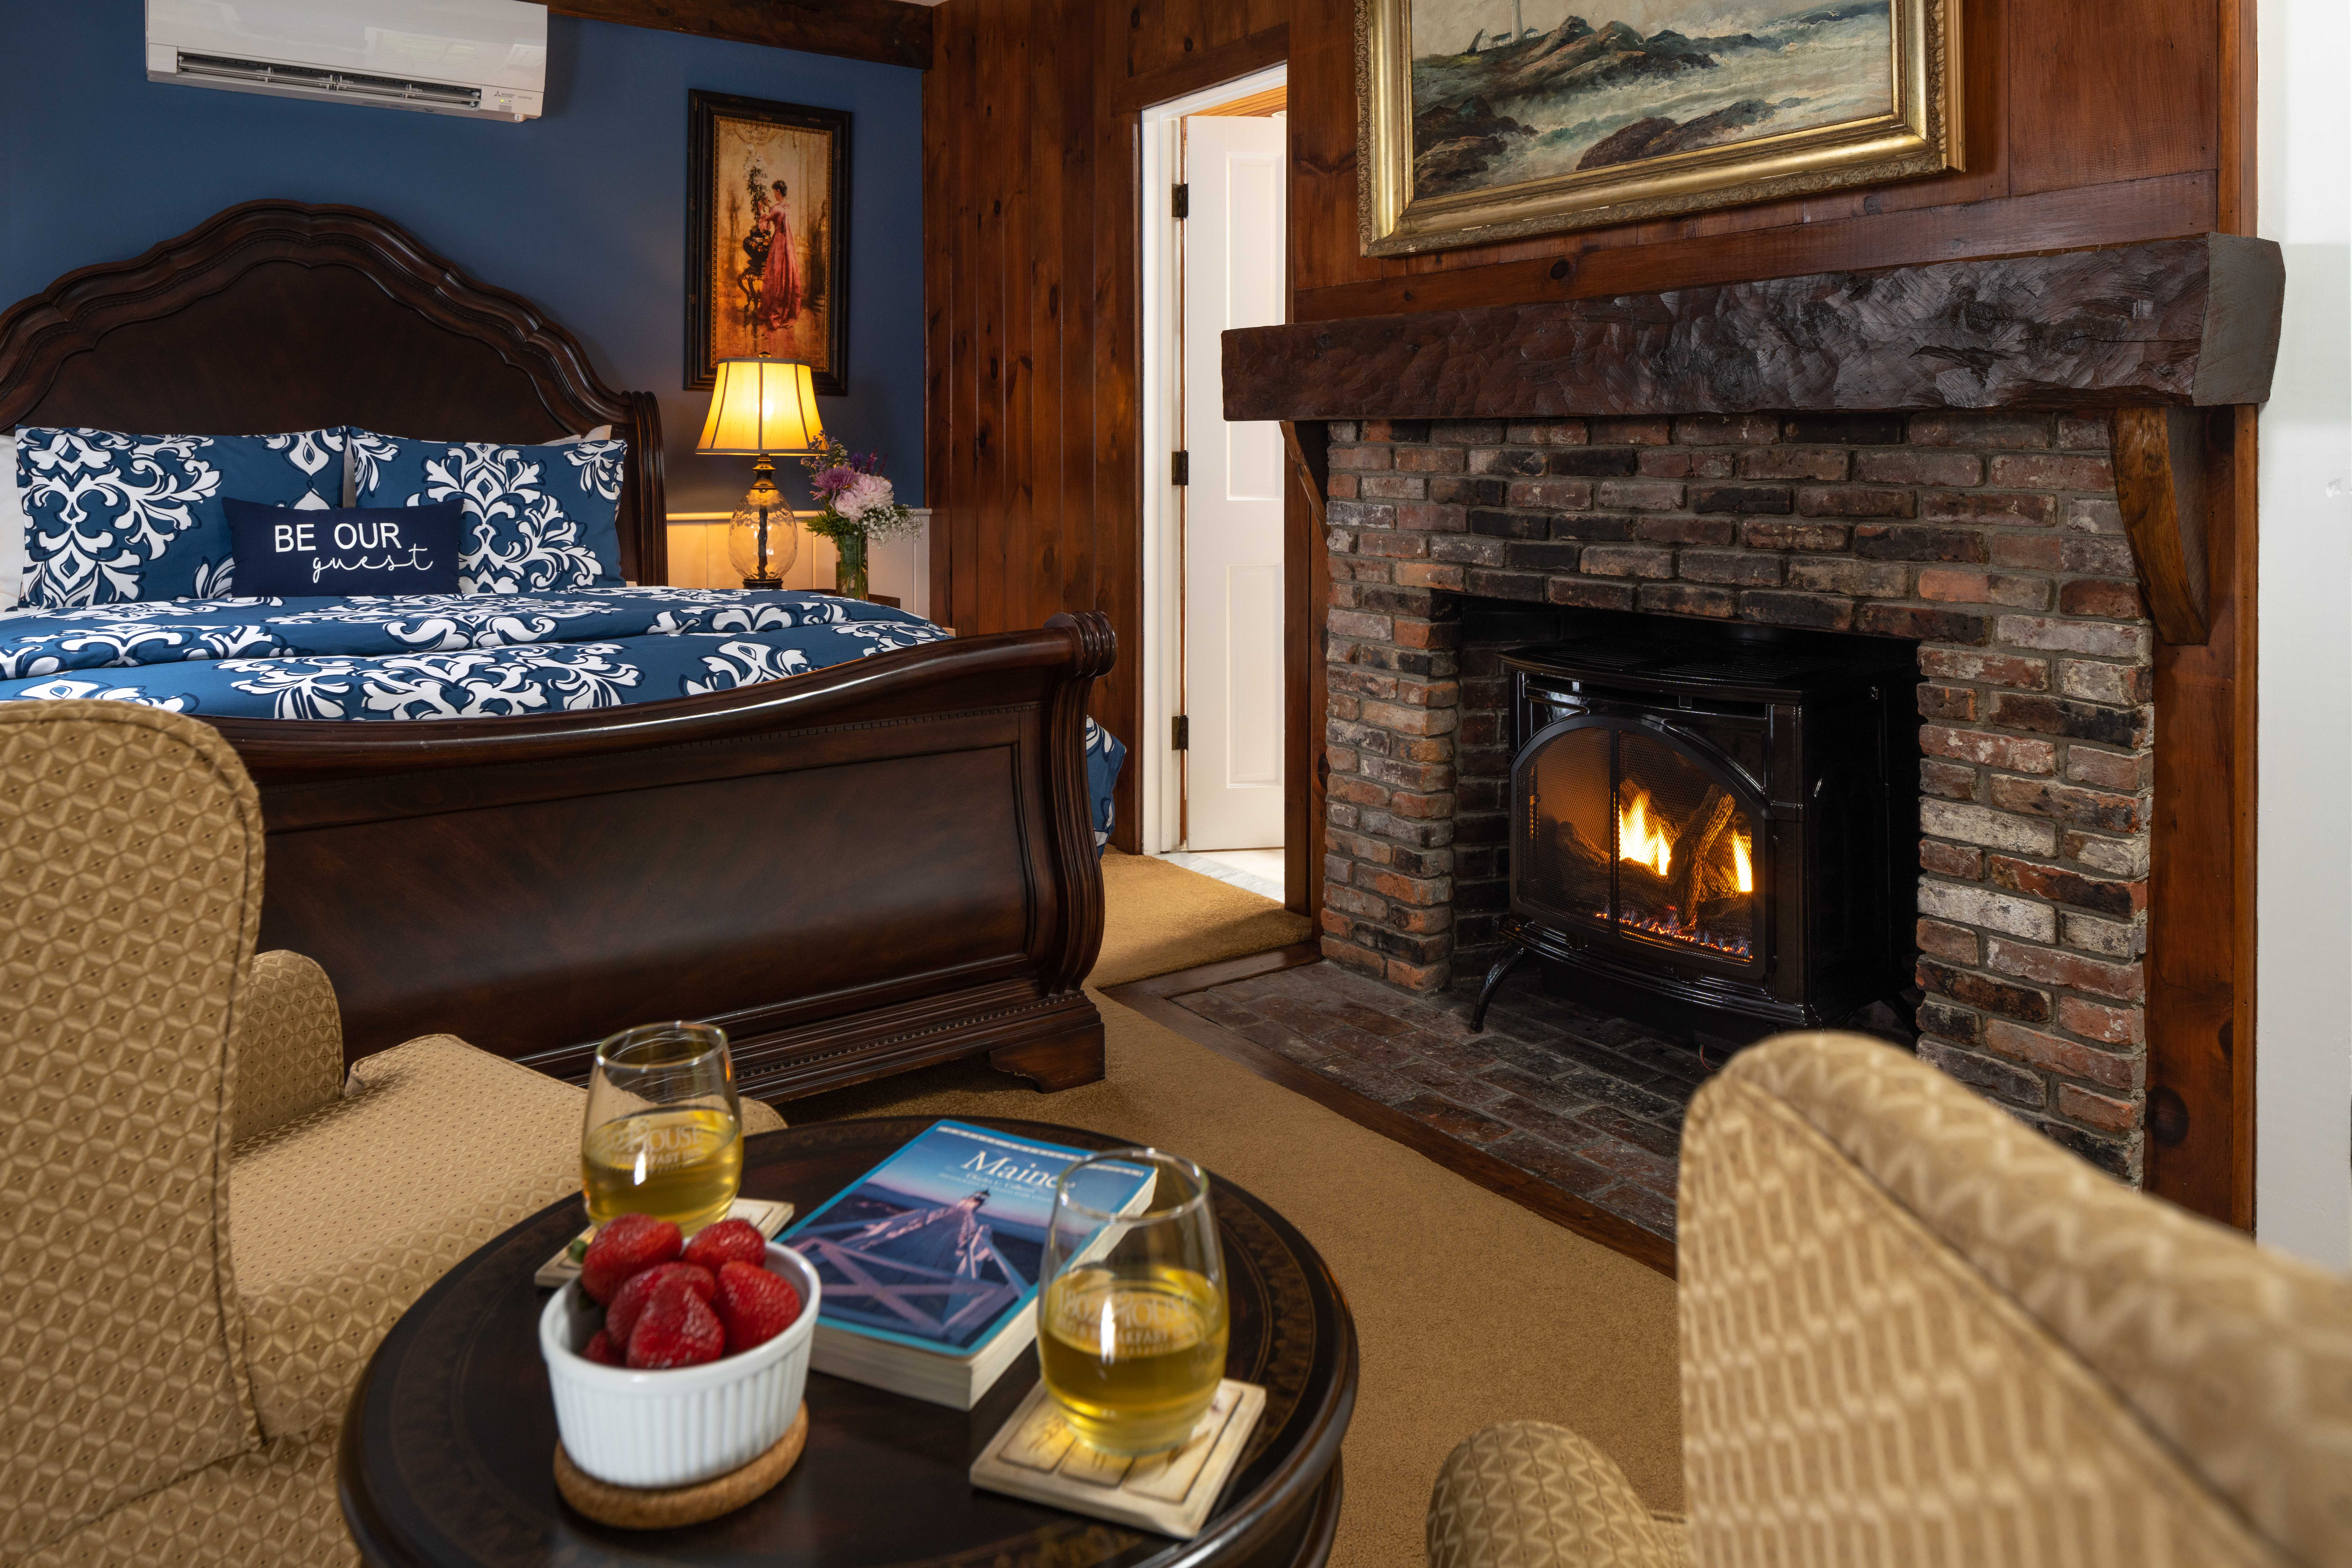 Bed room with fireplace